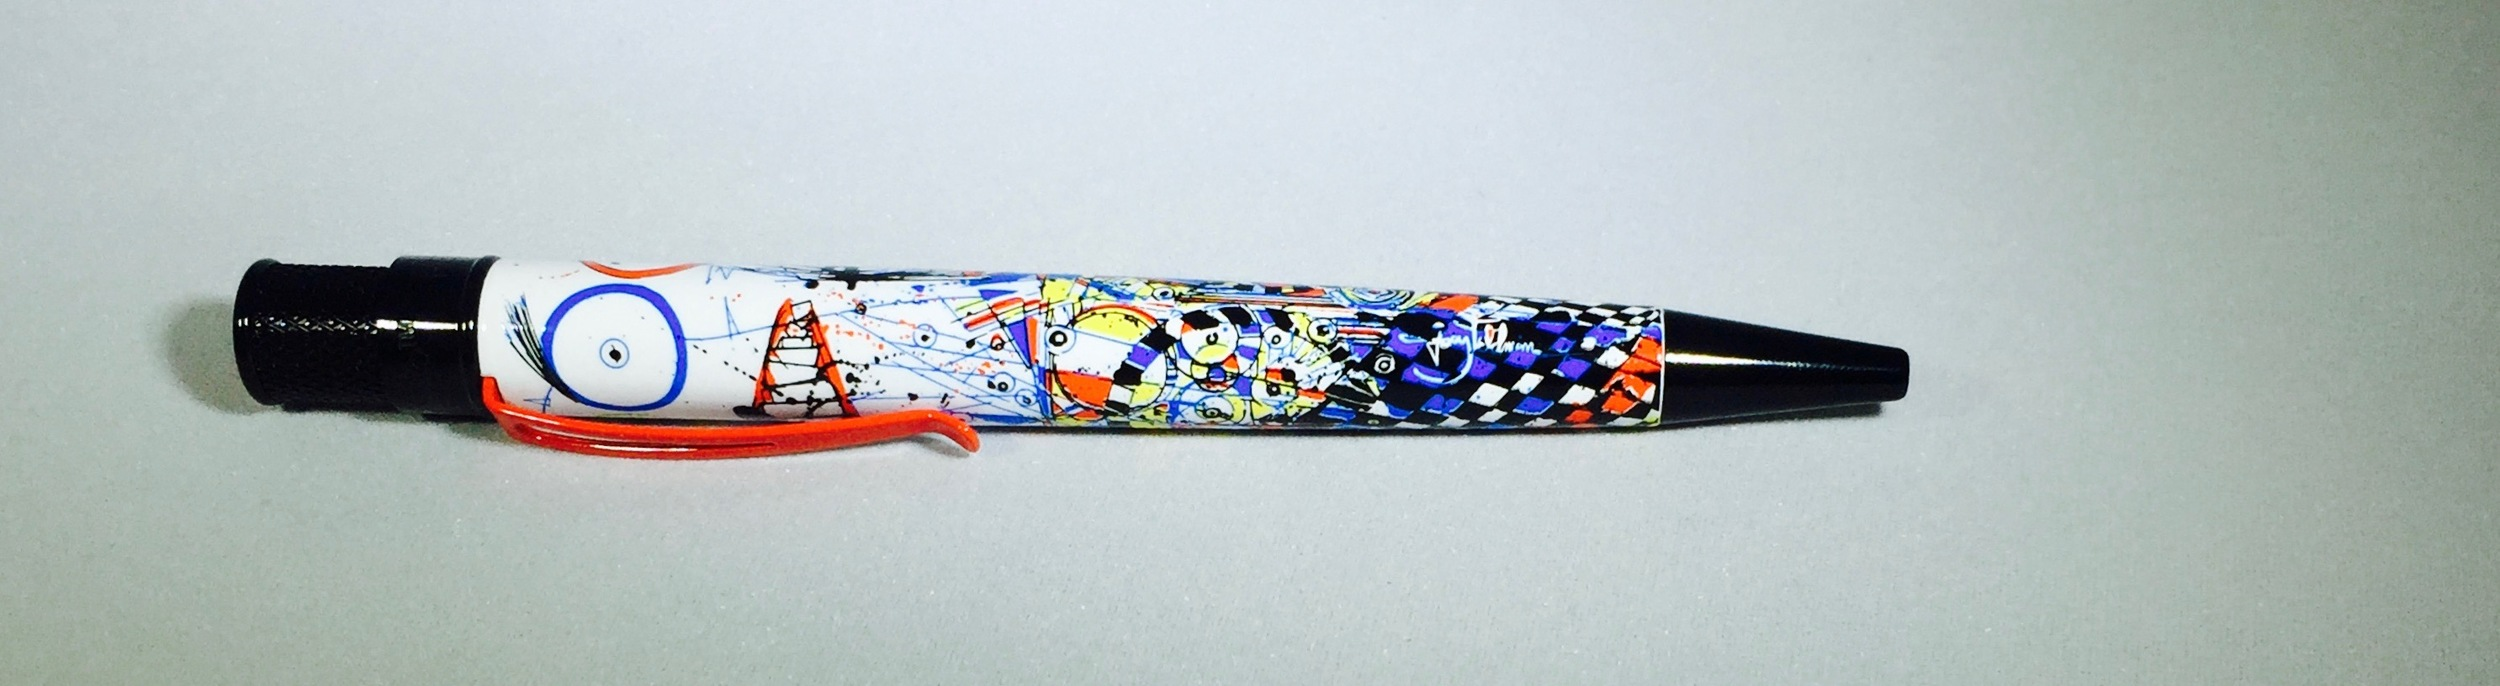 The defining feature of this pen is the artwork on the barrel.